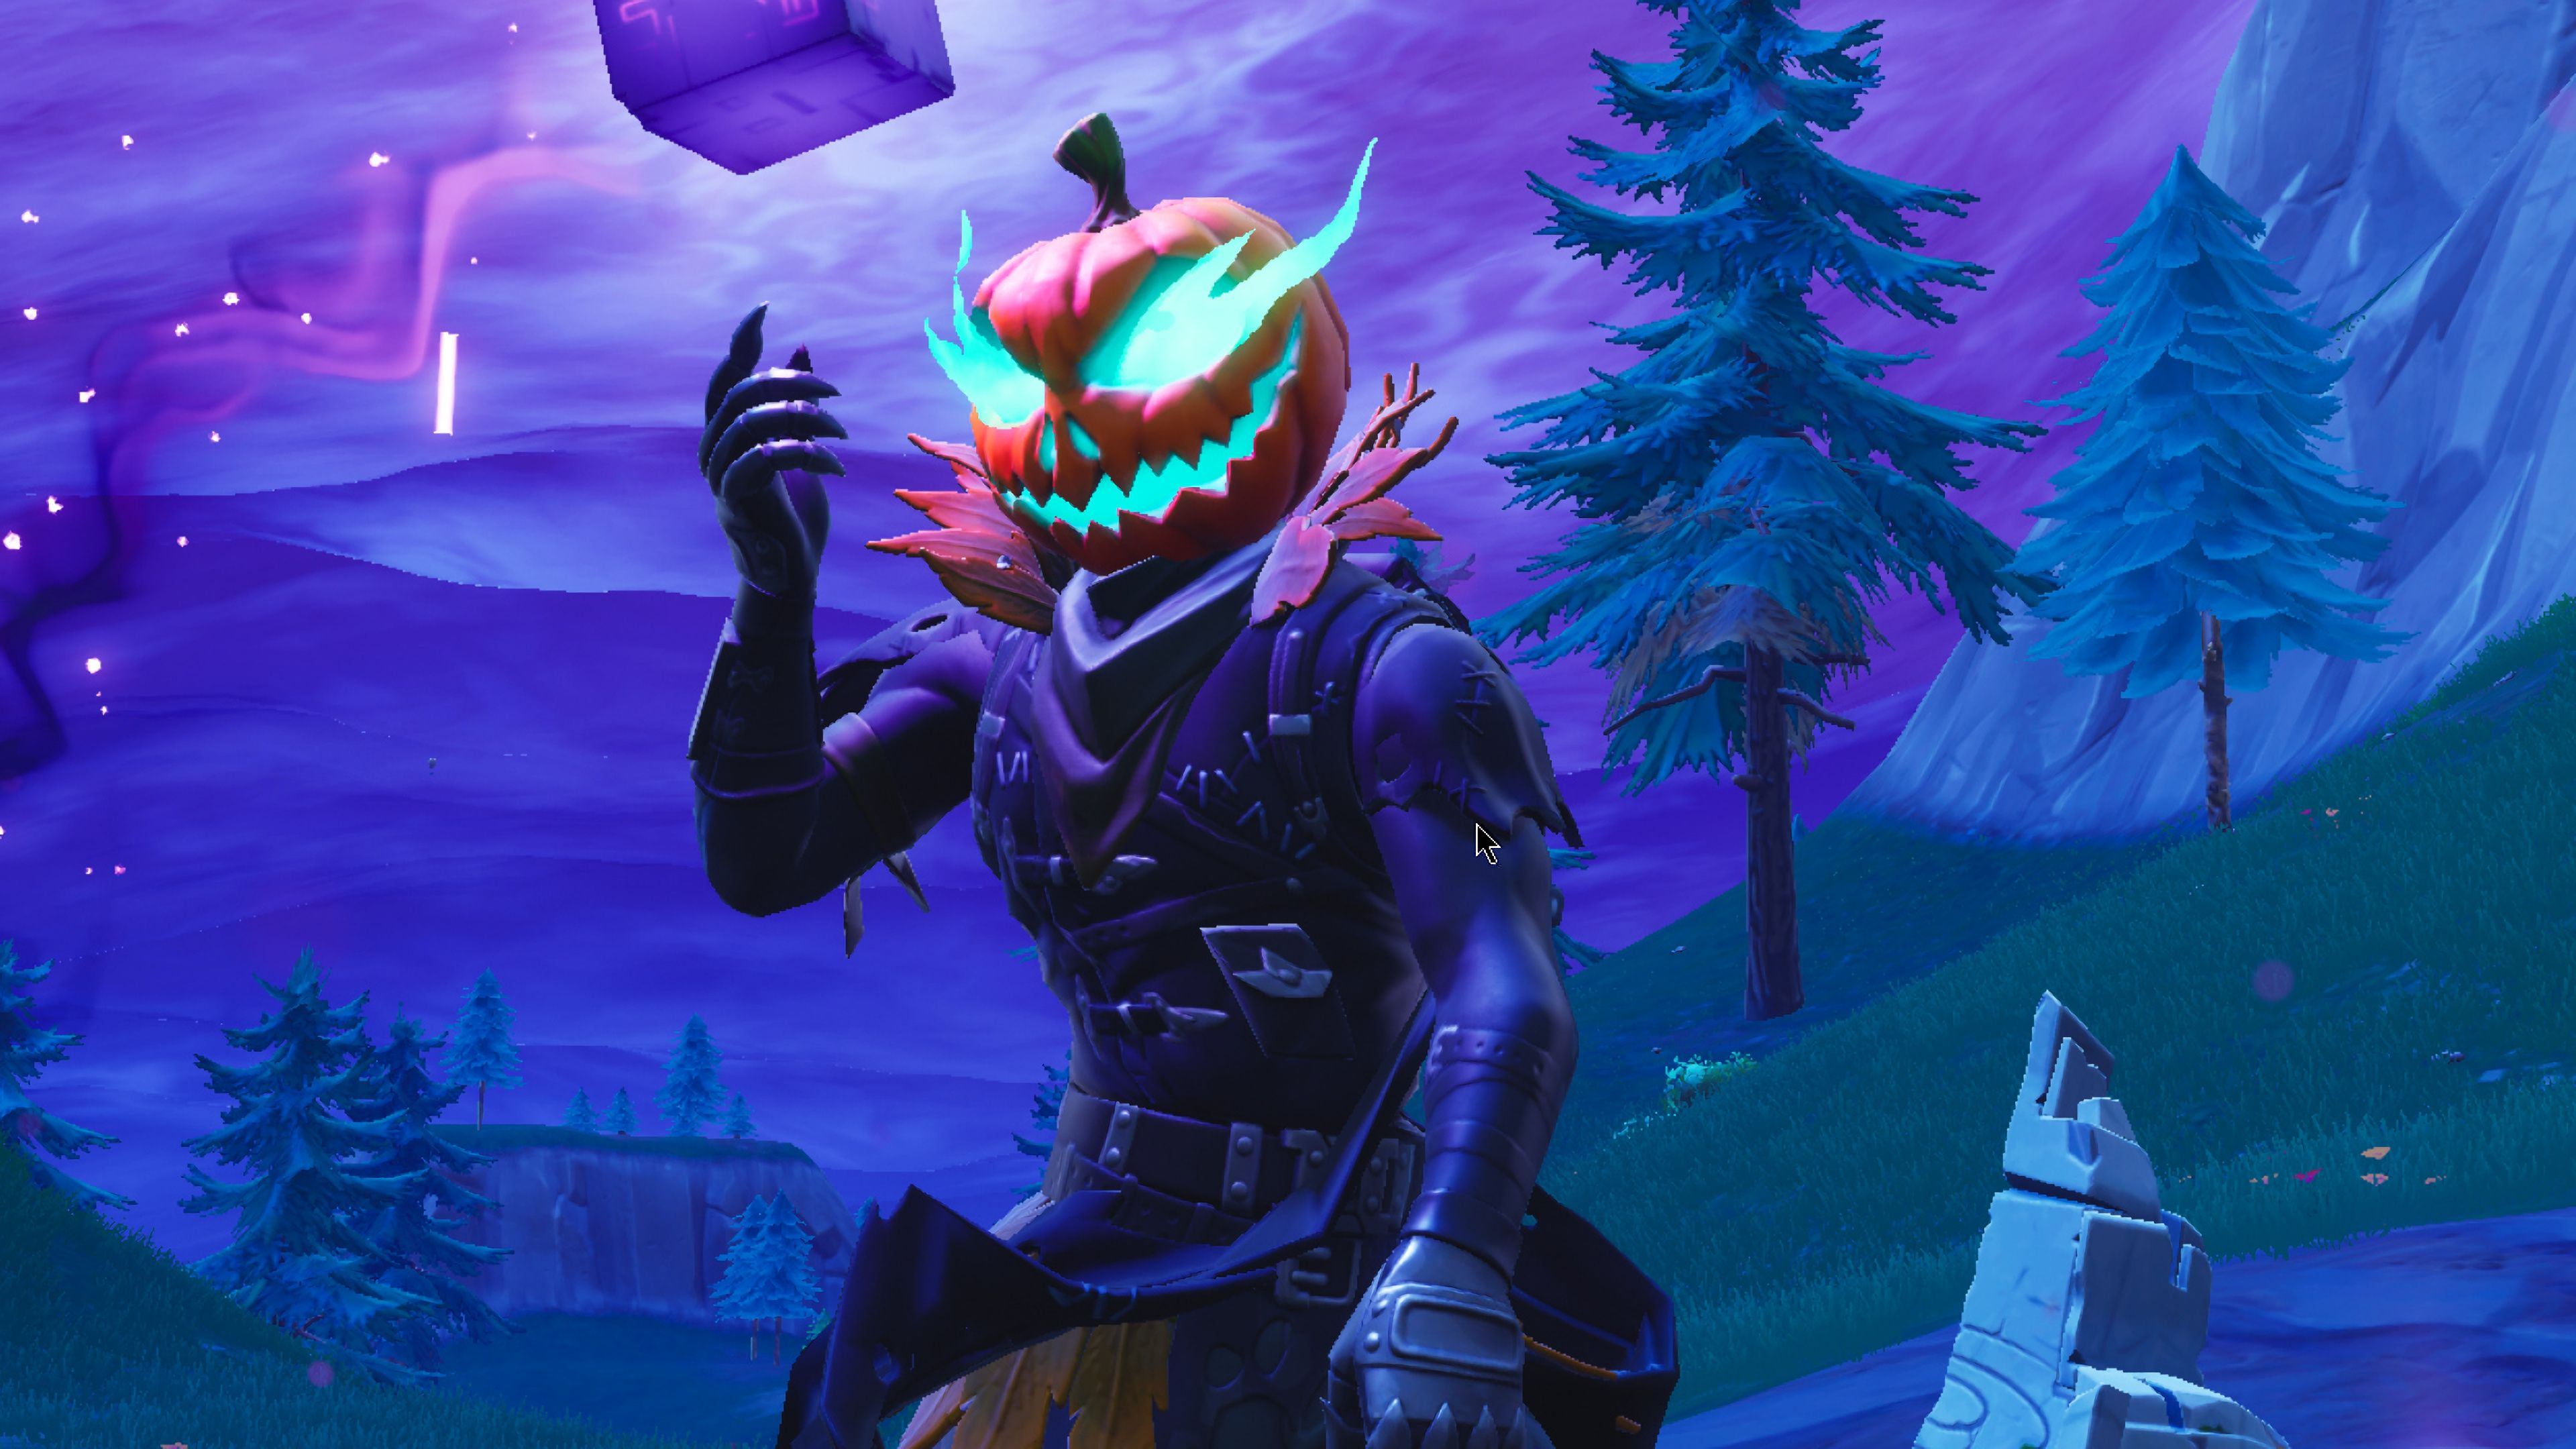 Pin On Fortnite Game Wallpapers 4k